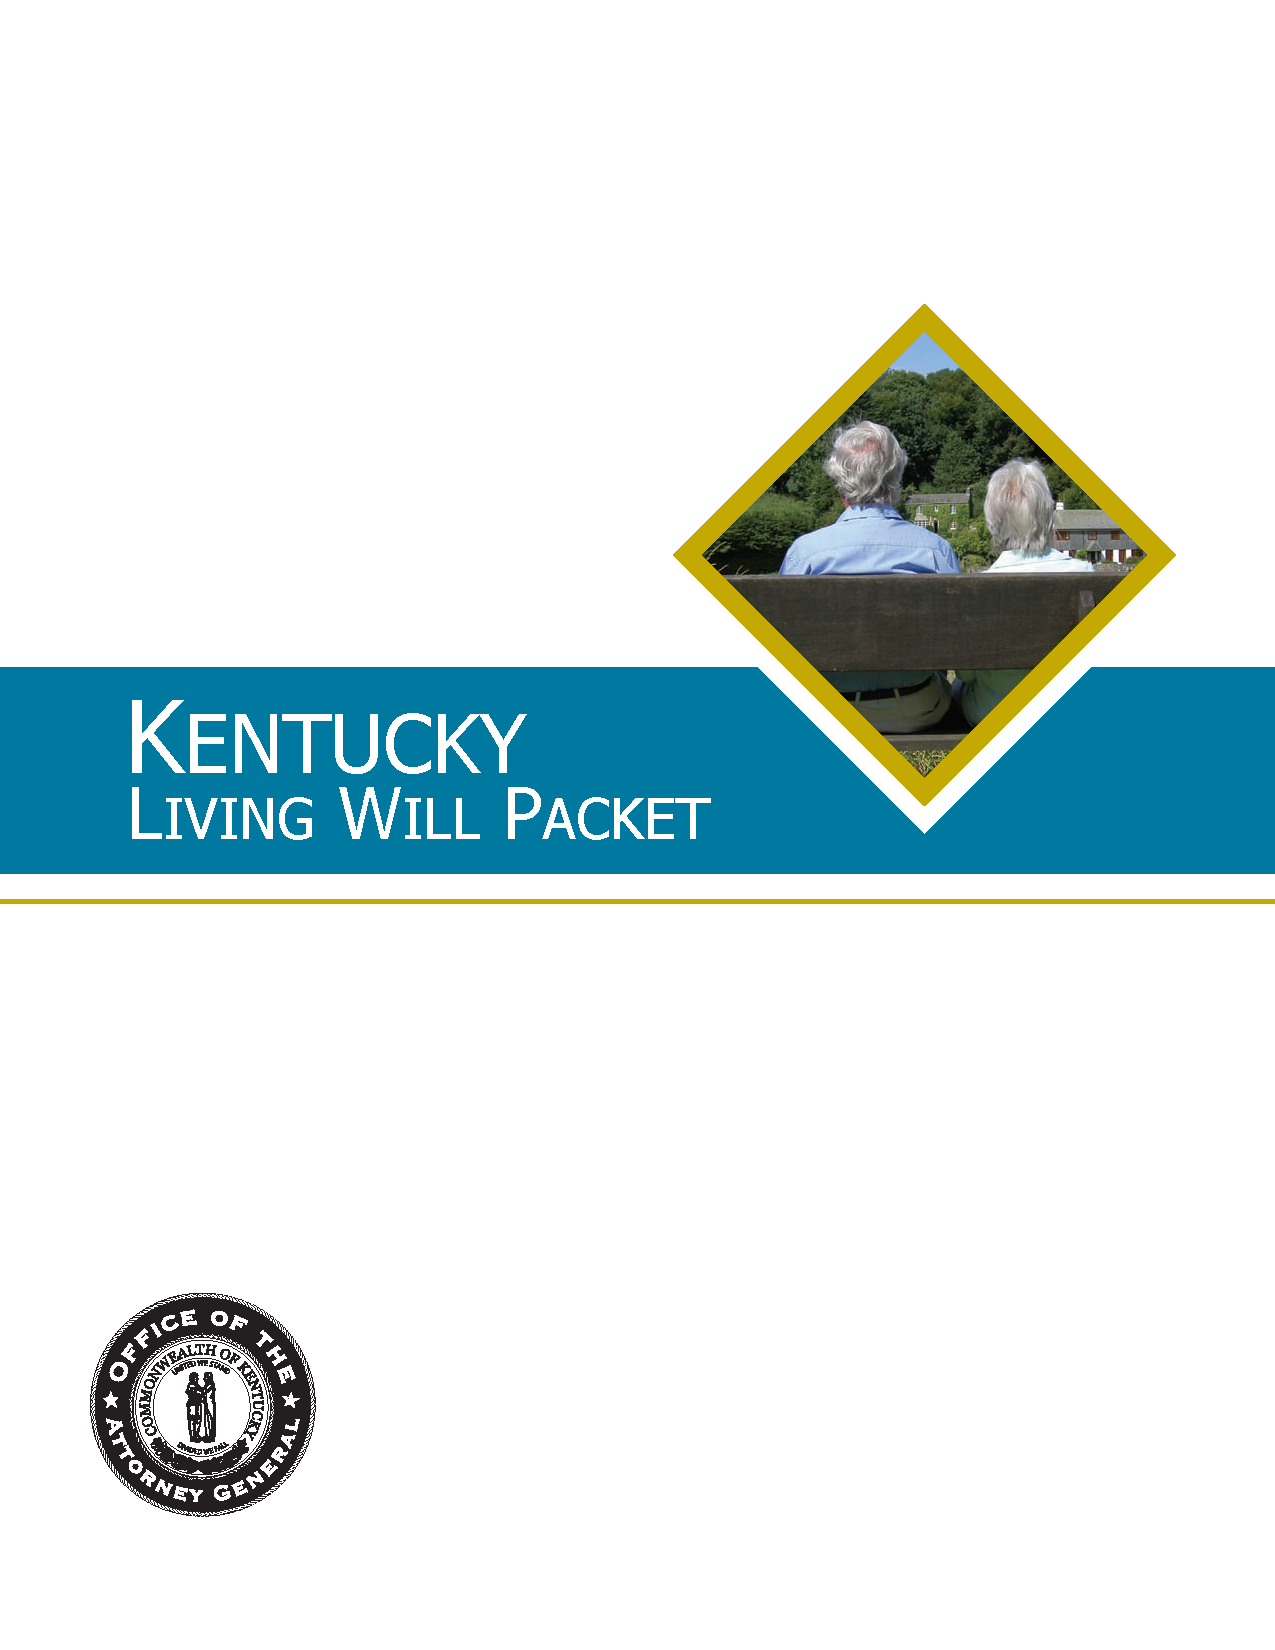 Kentucky Advance Directive For Health Care